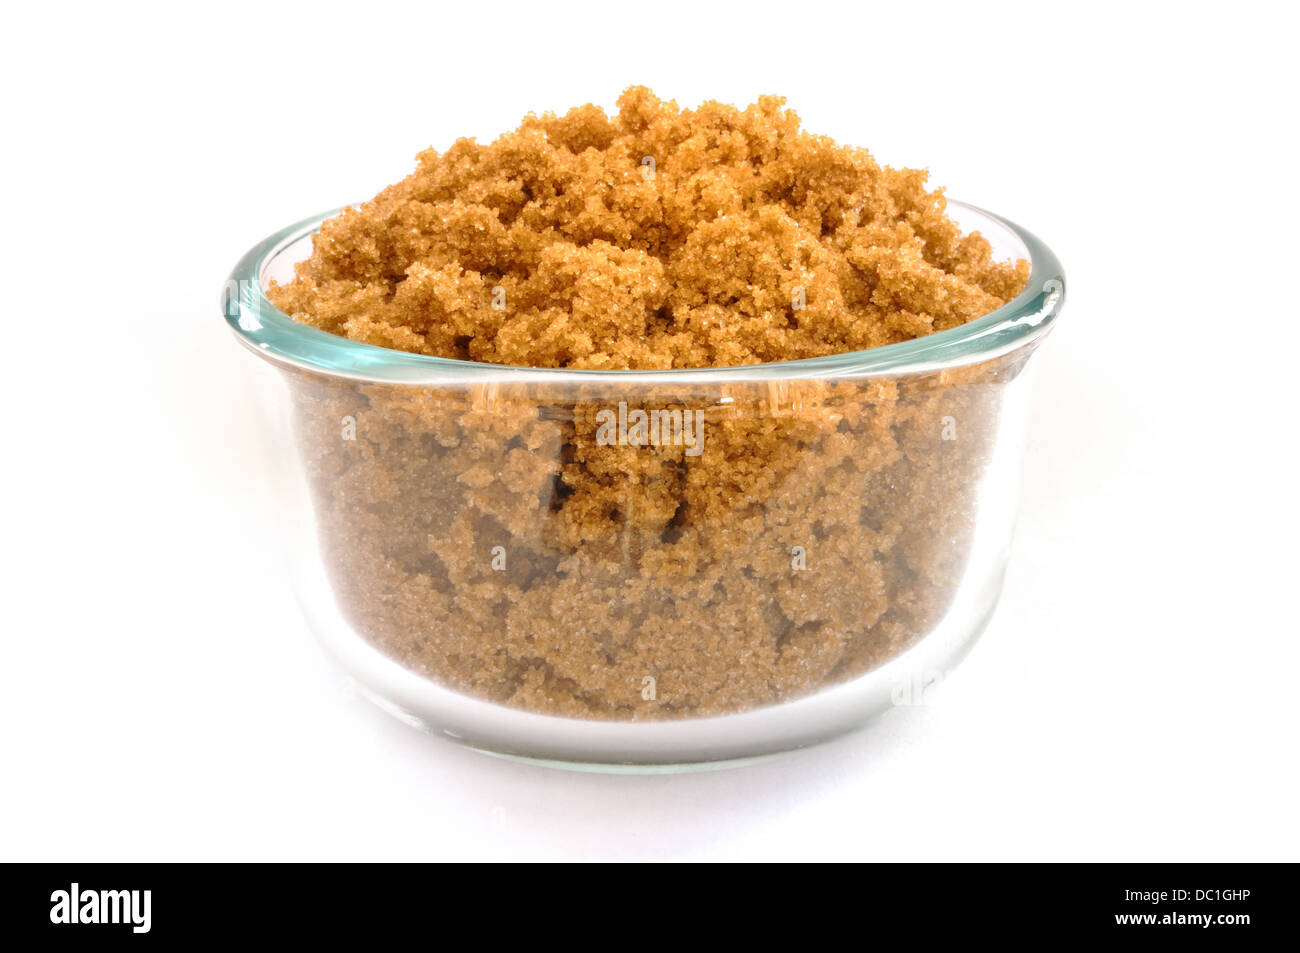 Brown Sugar in a Glass Bowl Isolated on White - Stock Image